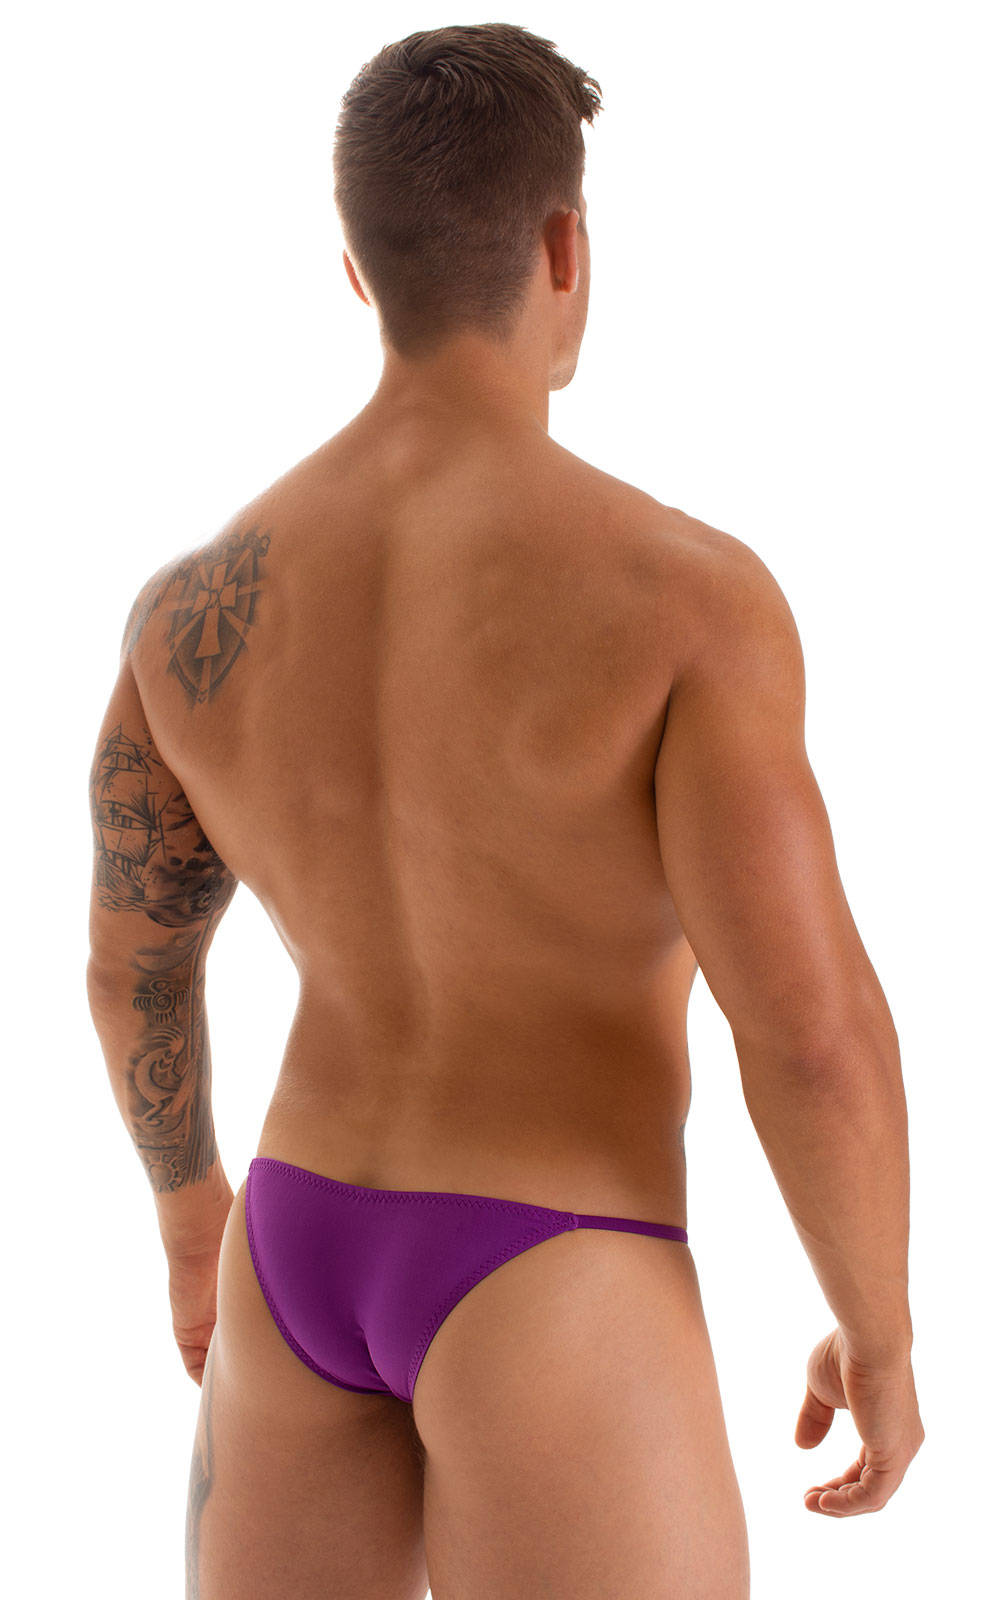 Stuffit Pouch Half Back Tanning Swimsuit in ThinSkinz Grape 2